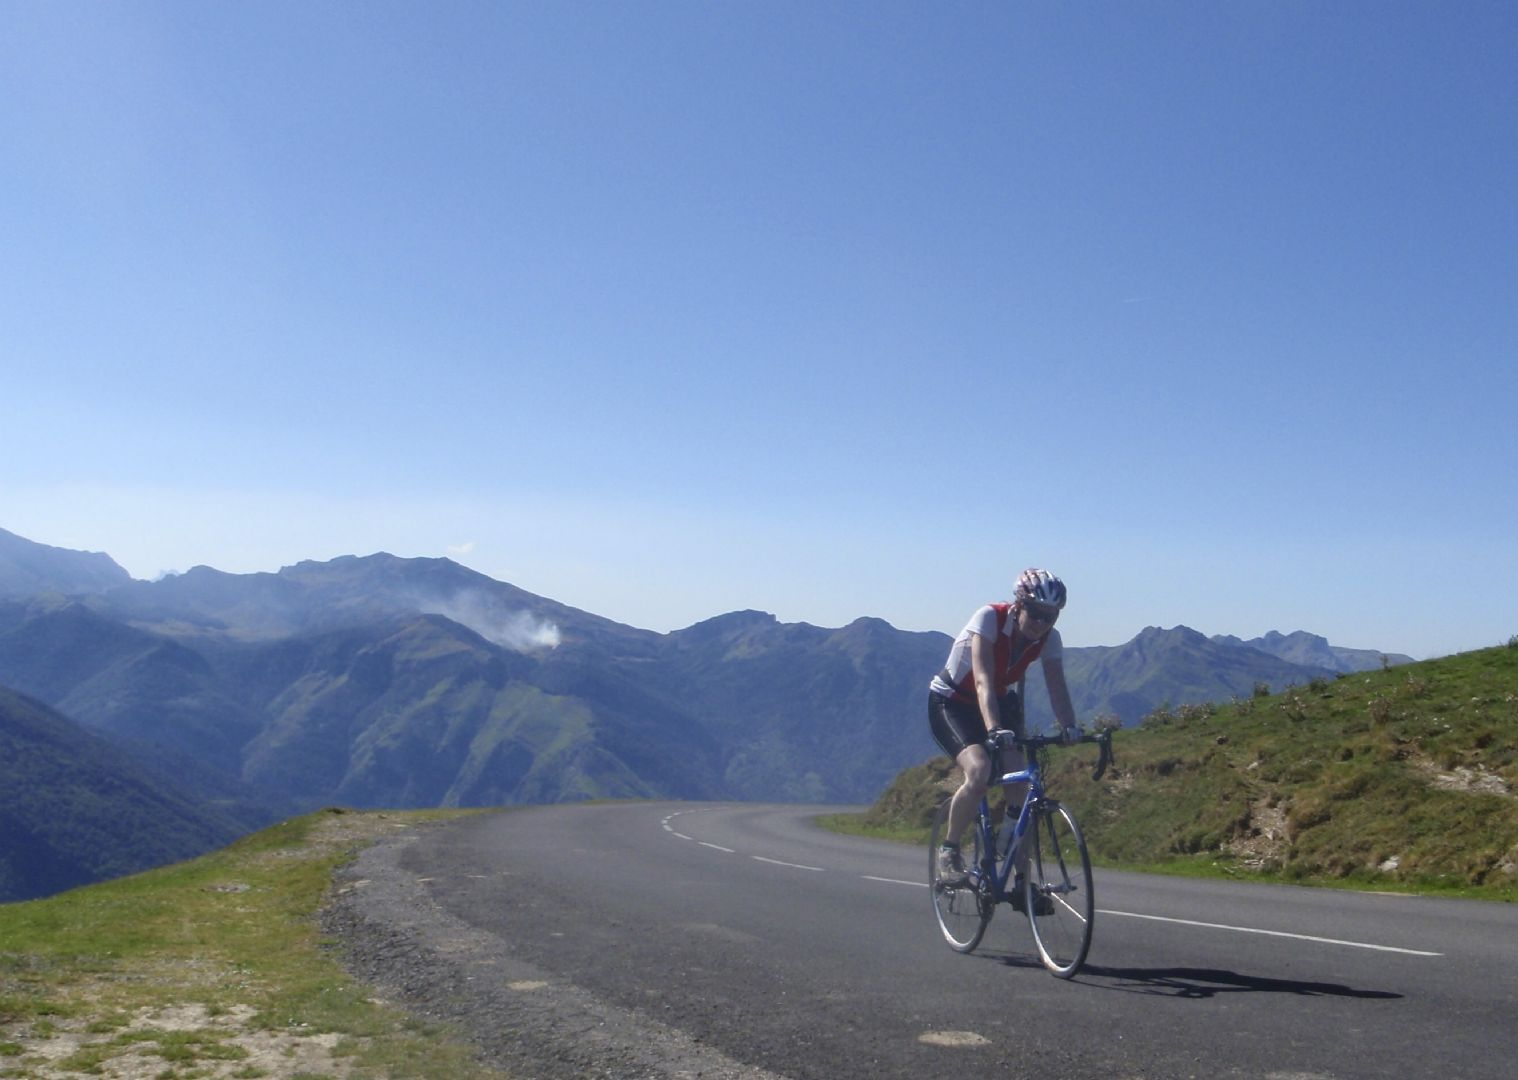 Pyrenees Classic Road Cycling 46.jpg - France - Trans Pyrenees Challenge - Guided Road Cycling Holiday - Road Cycling